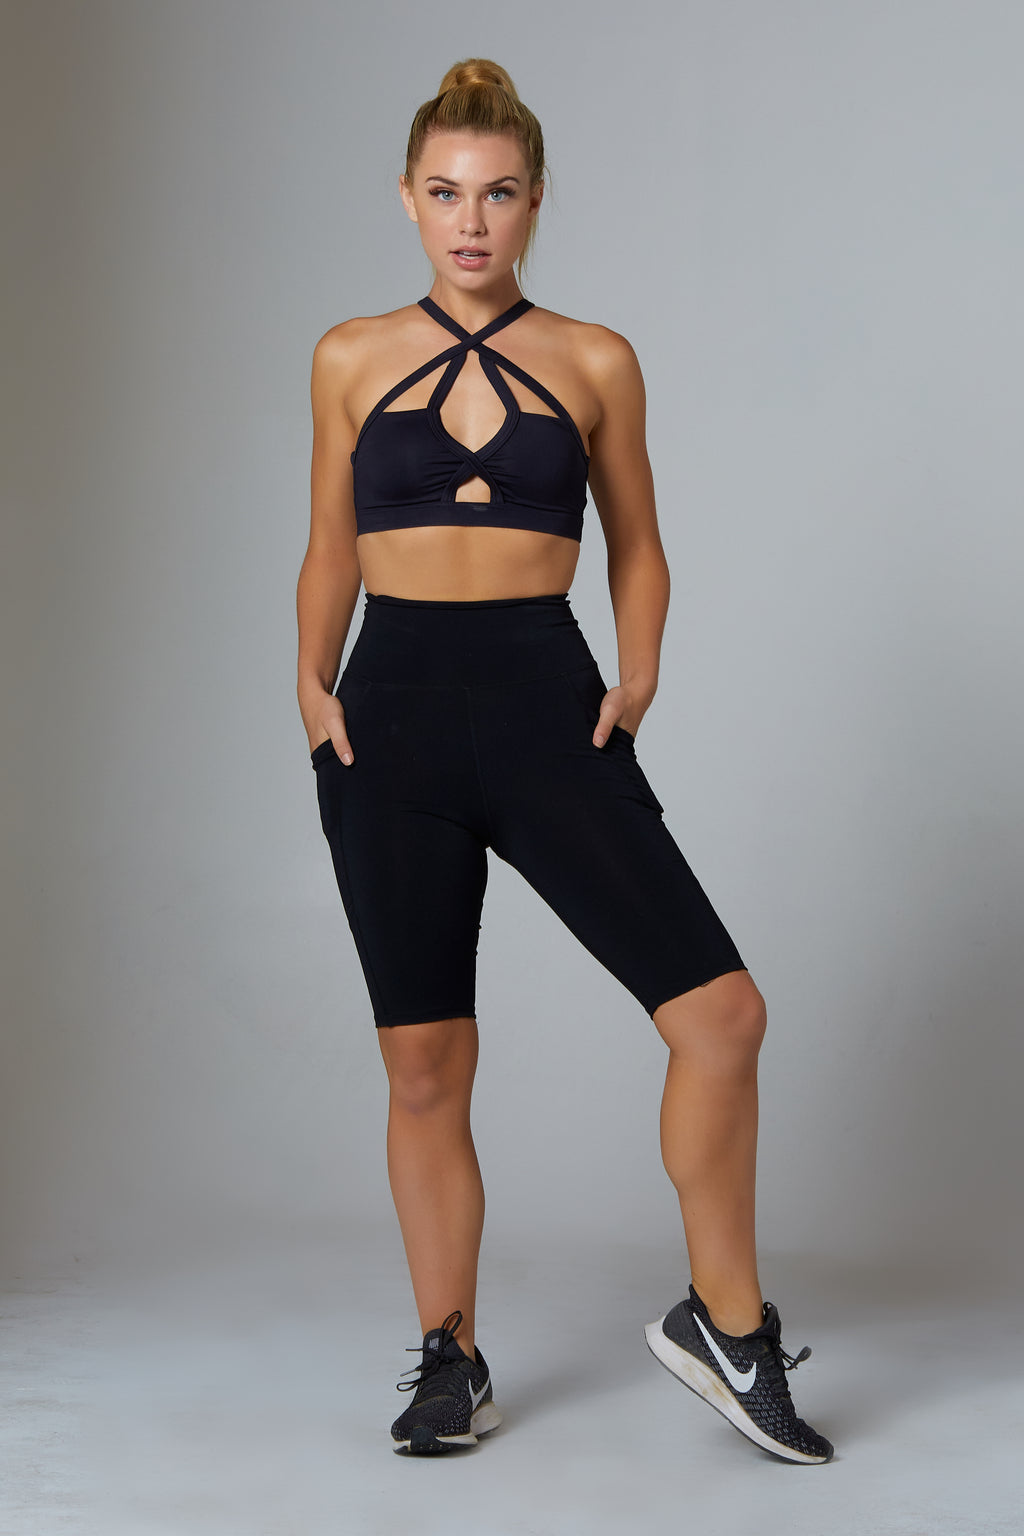 High Rise Biker Shorts - bodyloveathletica